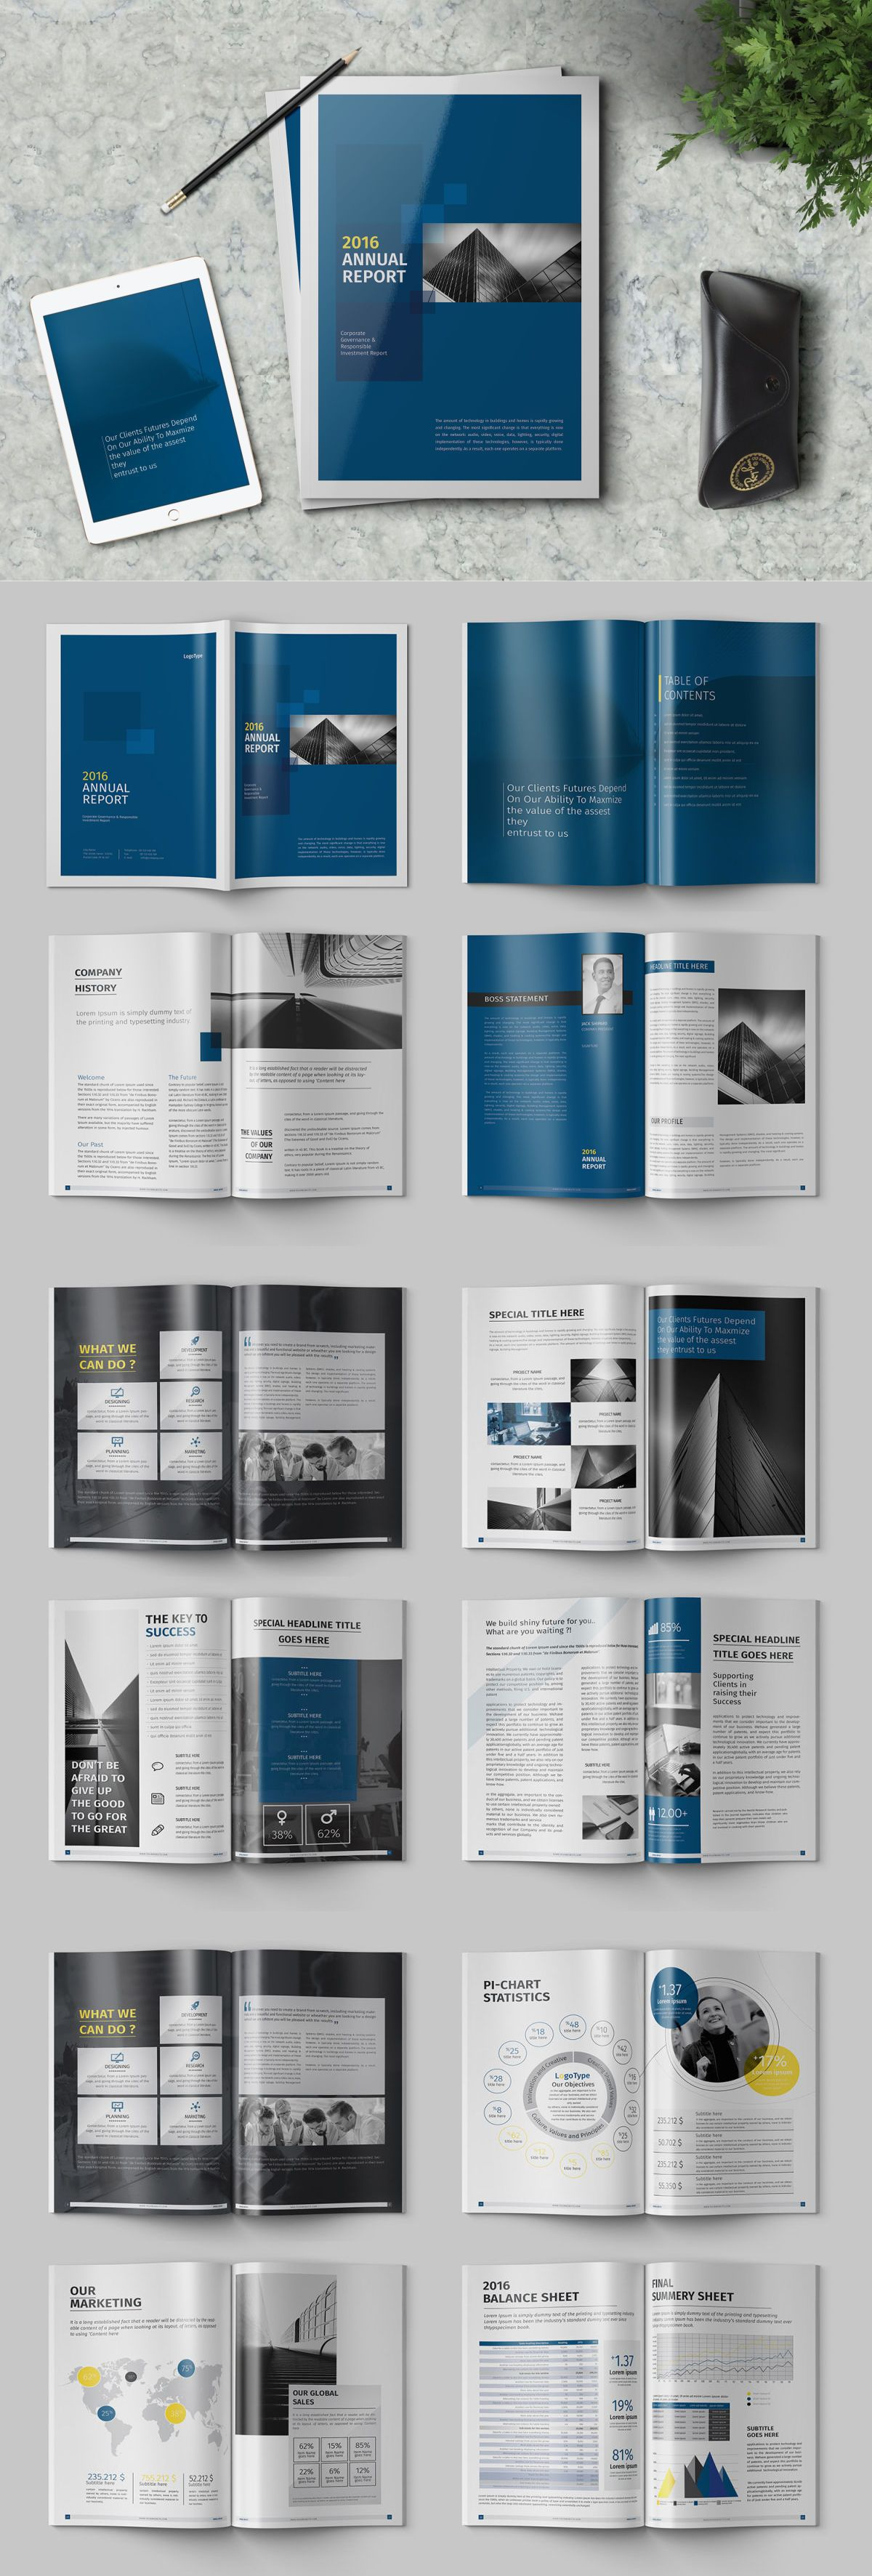 Blue Annual Report Template InDesign INDD | Annual Report Designs ...